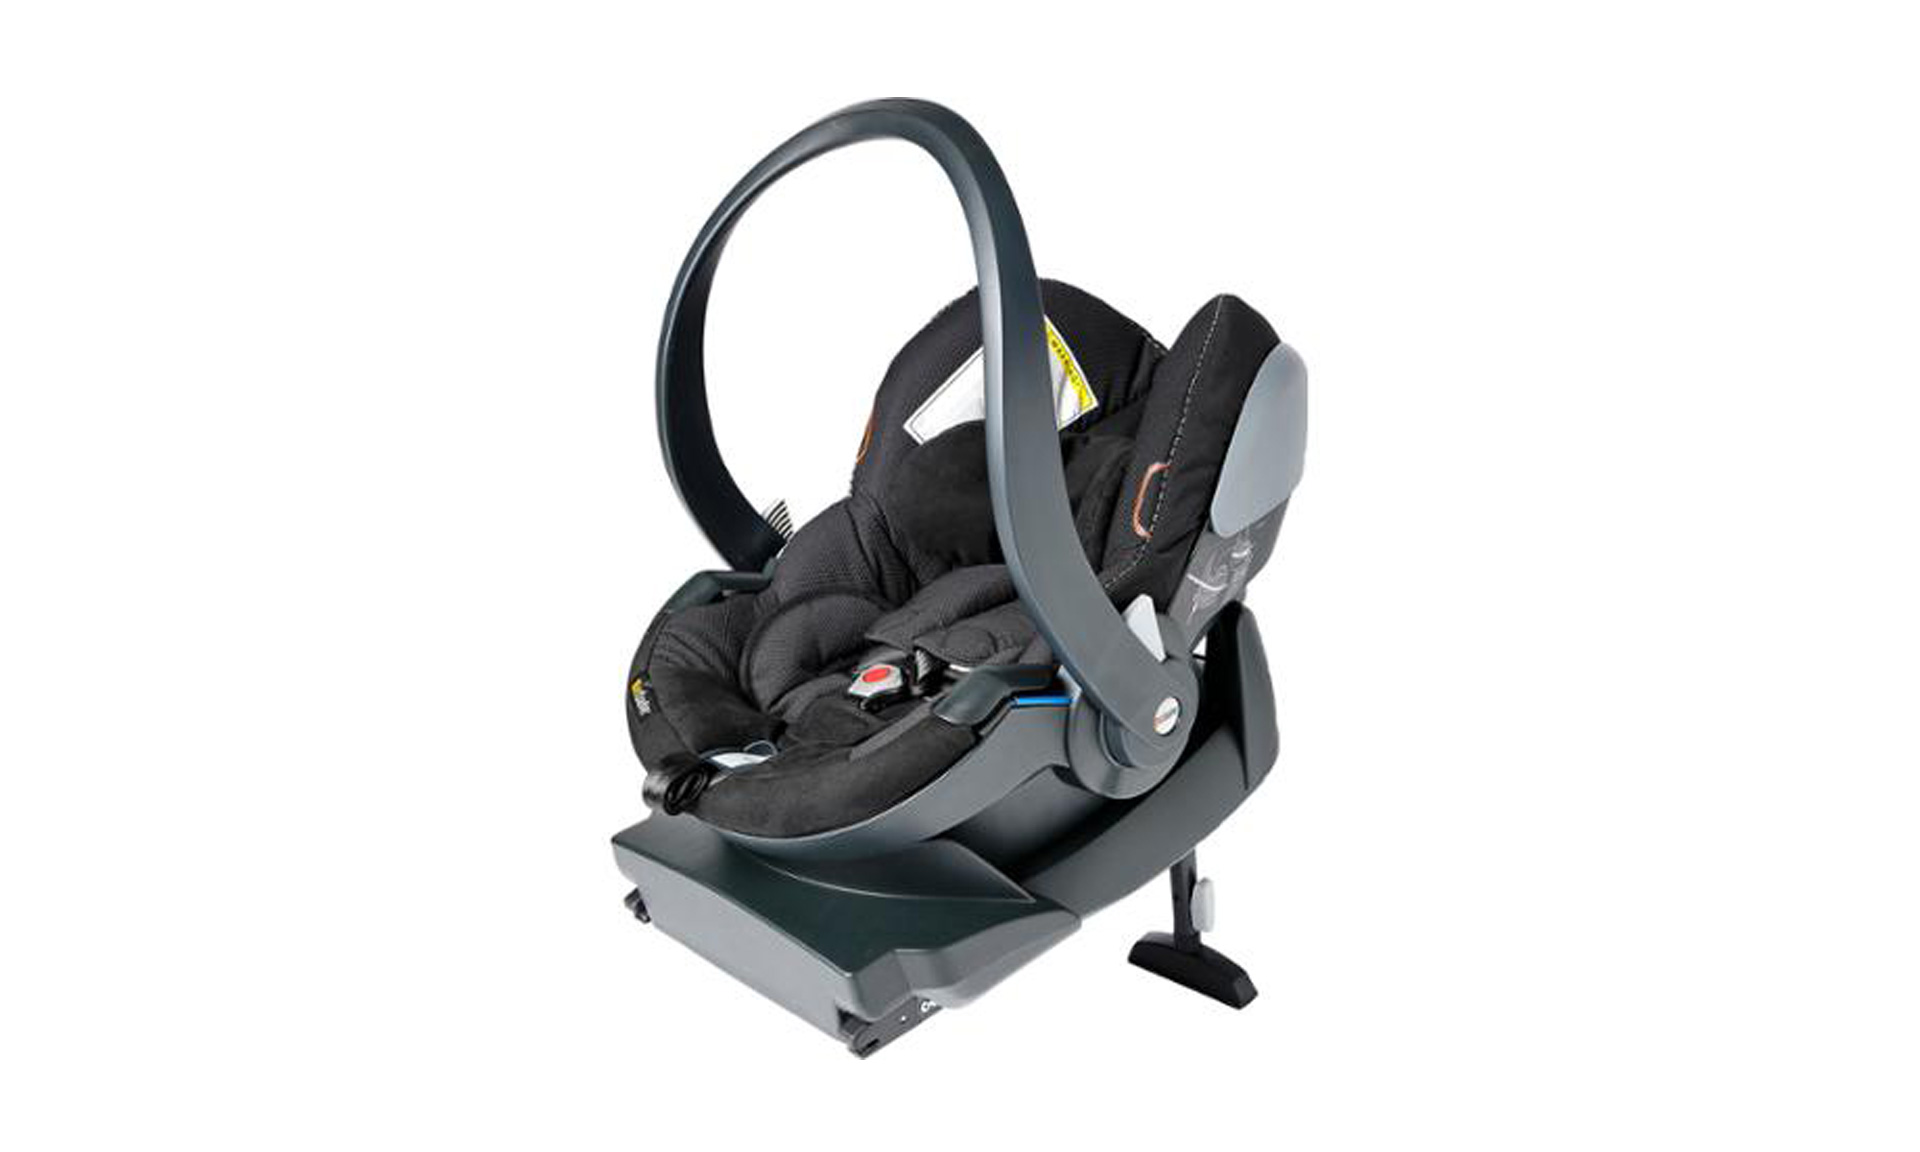 Car seat recall: BeSafe warn against using the iZi Go X1 with Isofix base – Which? News